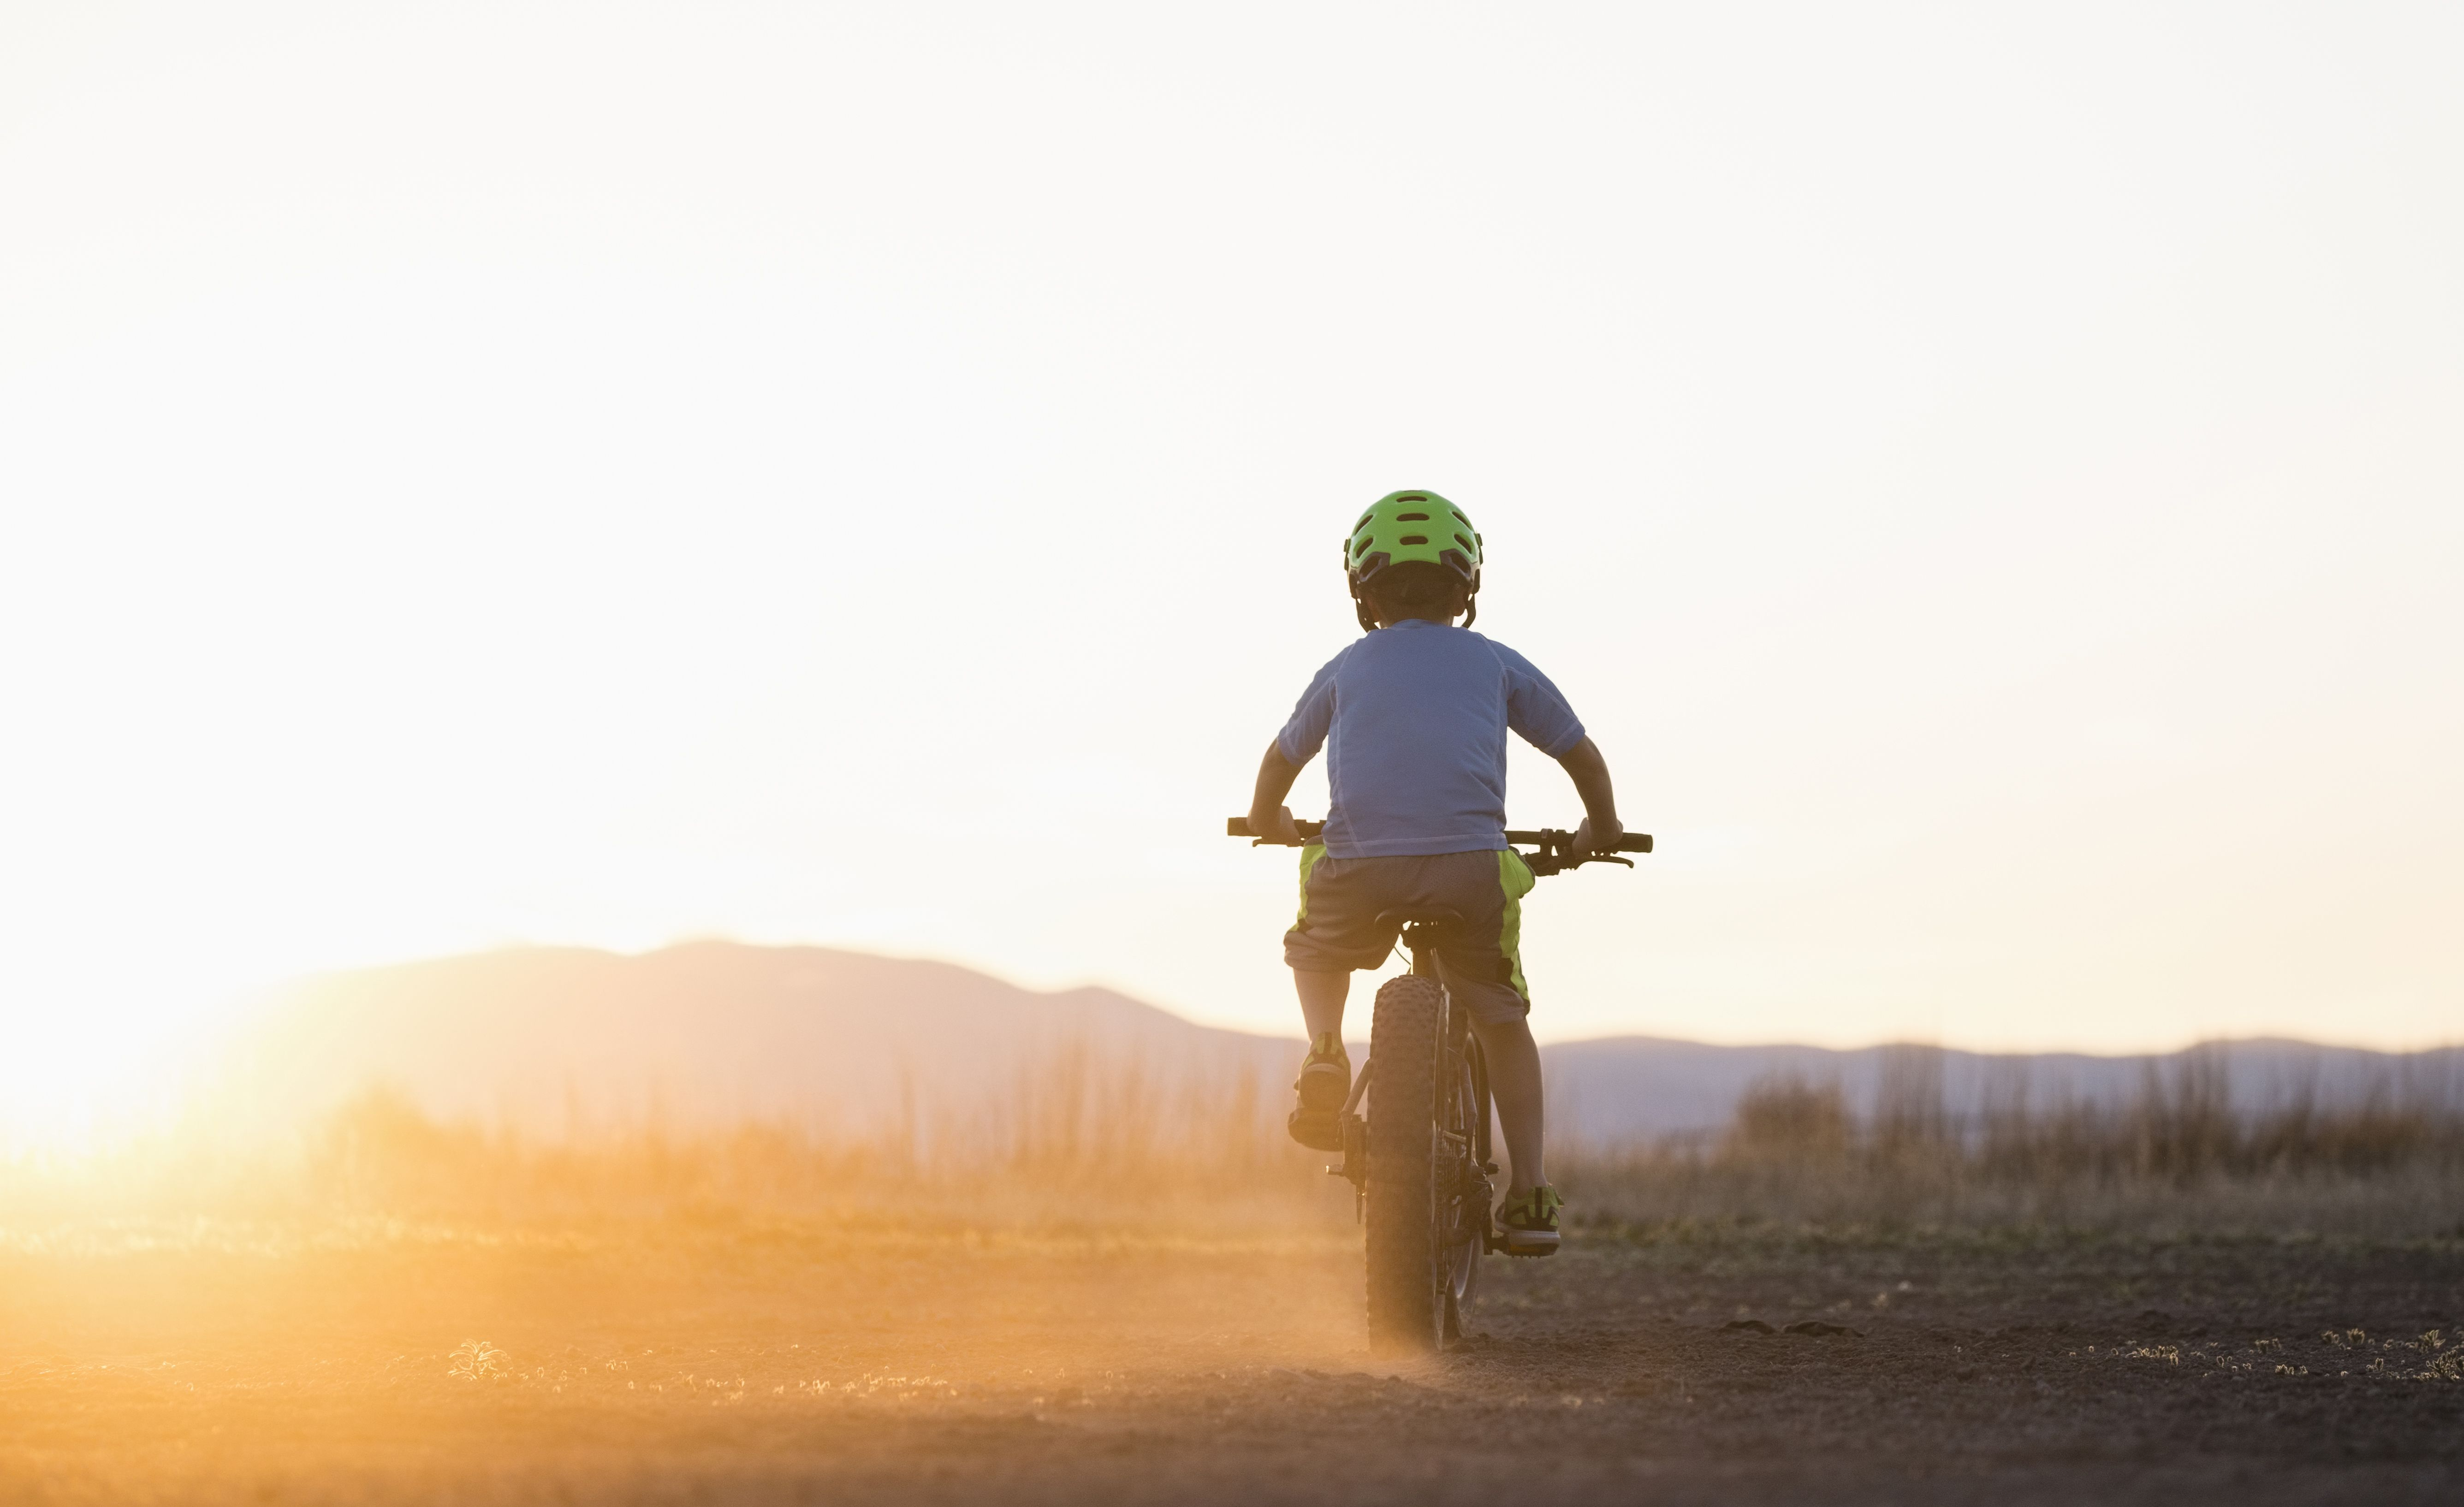 15 Gifts for Kids Who Love to Ride